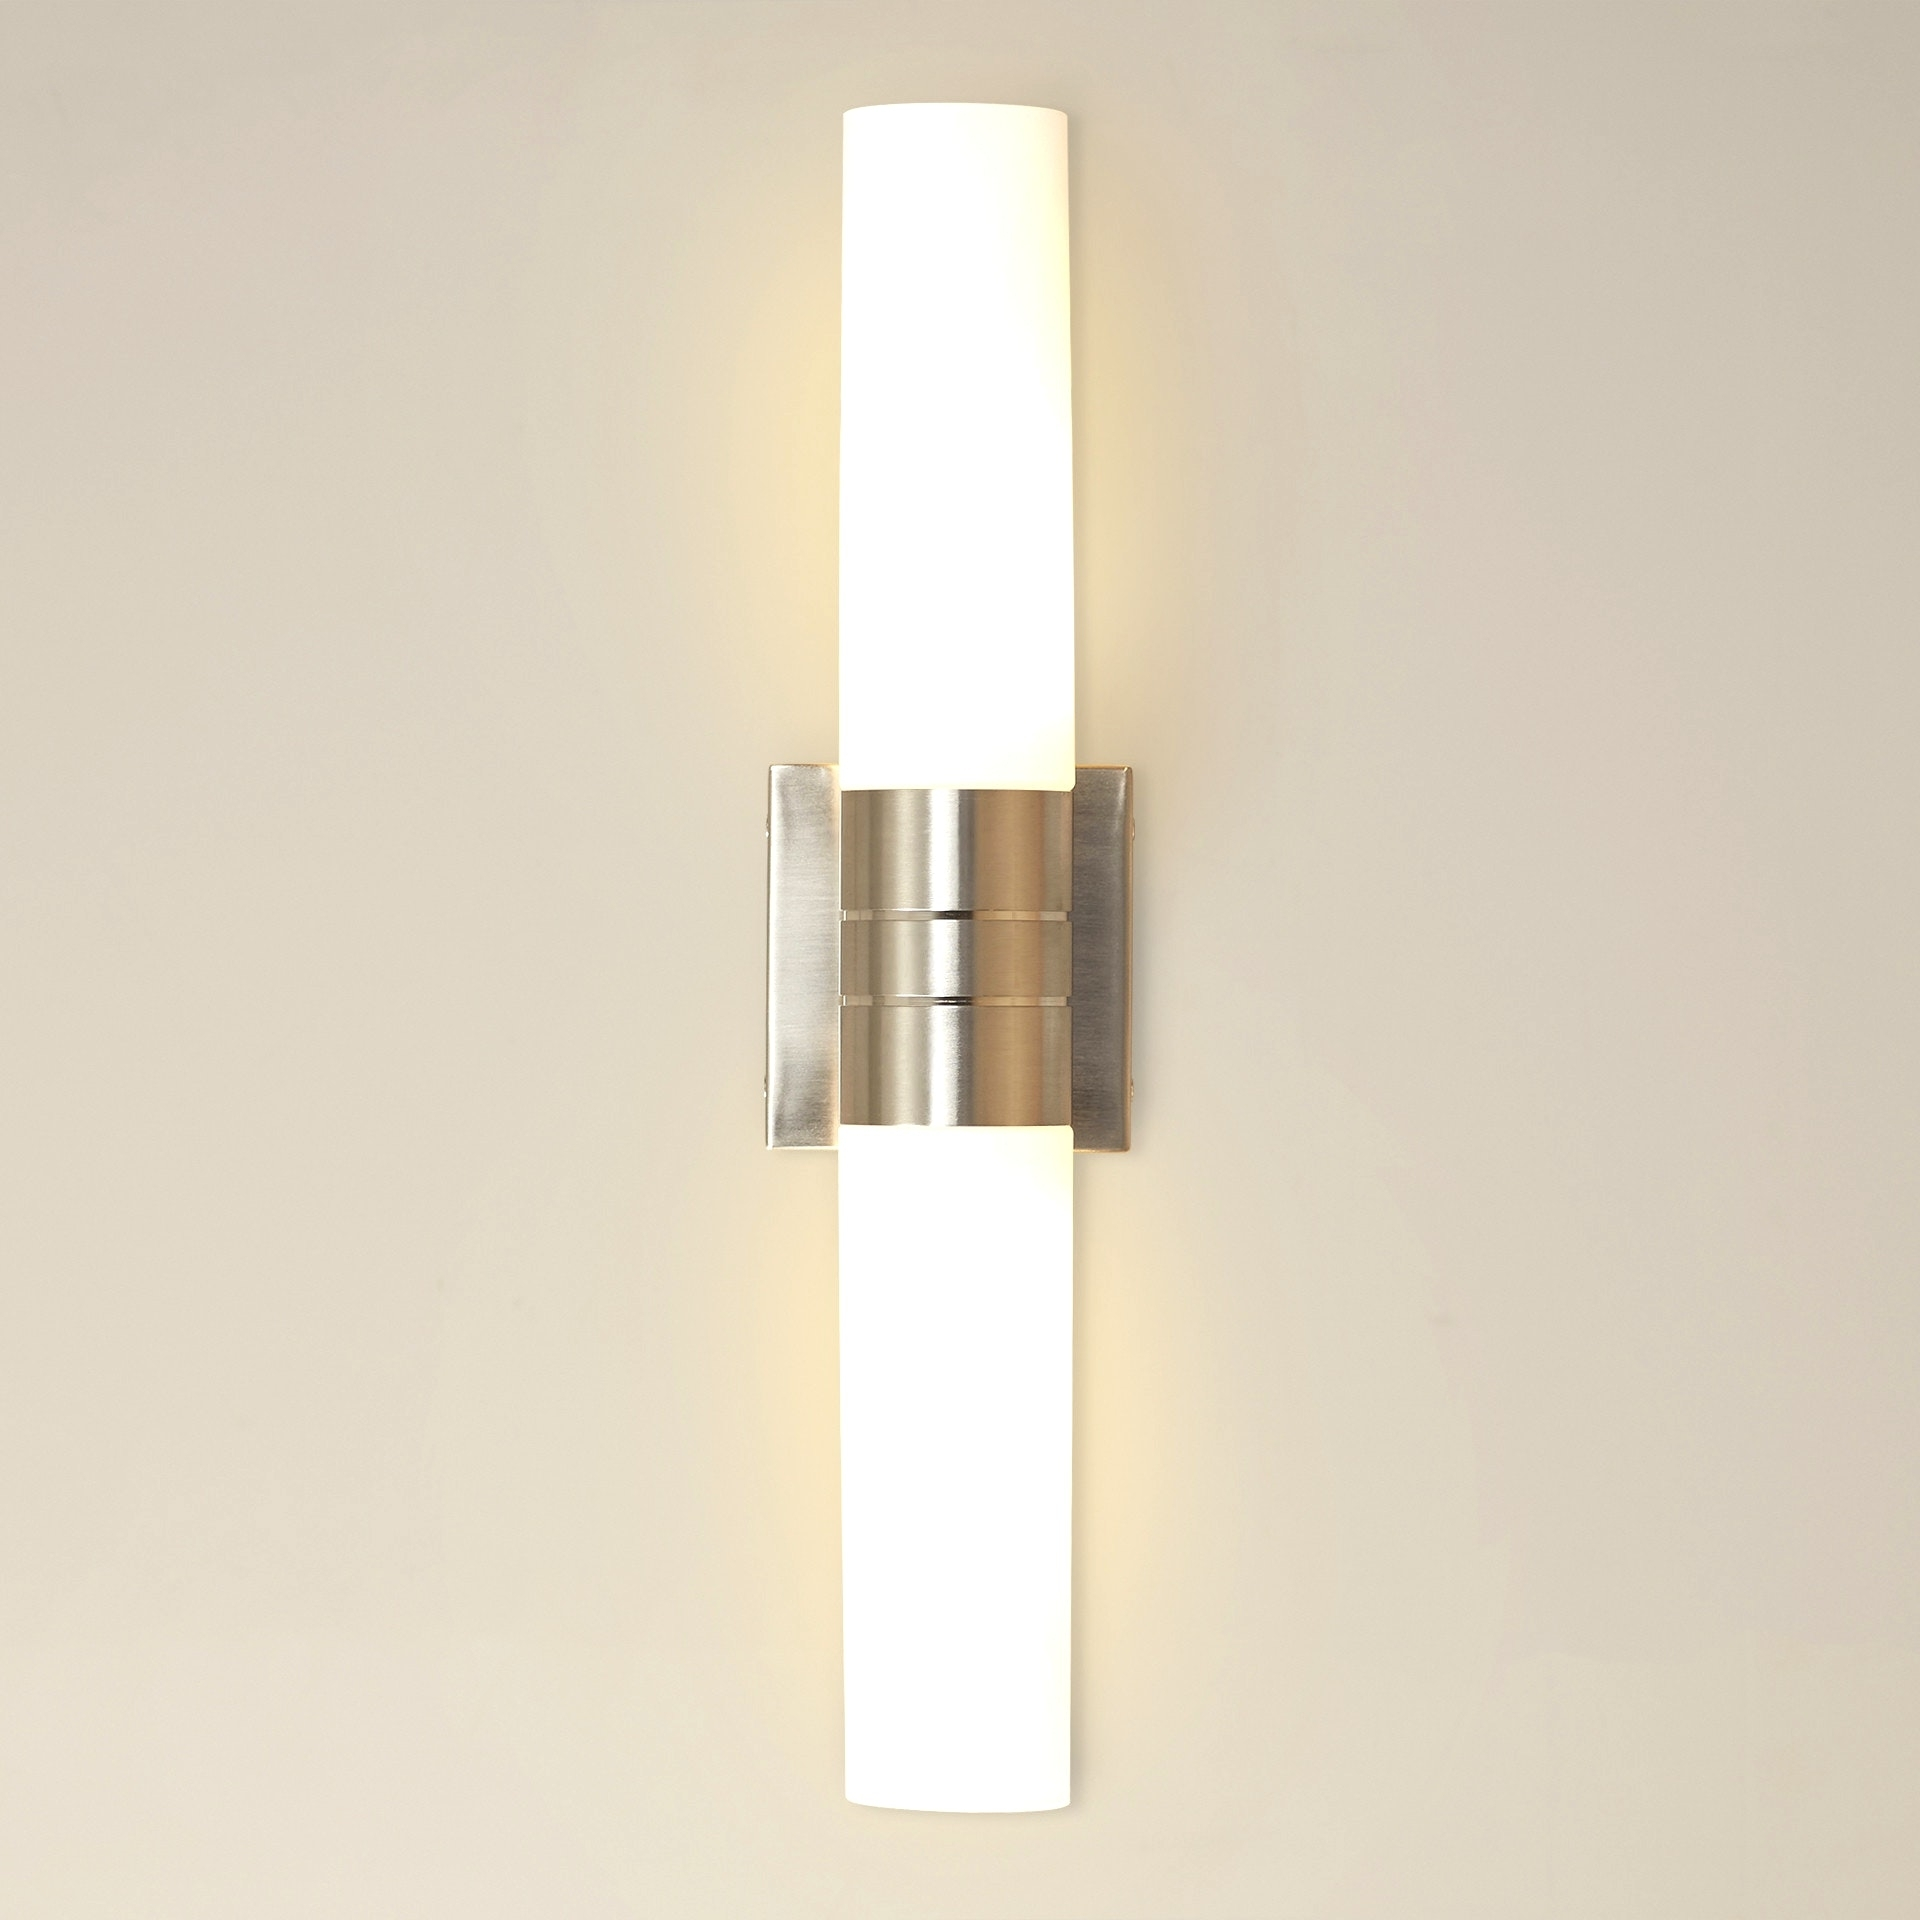 Battery Operated Outdoor Lights At Wayfair With Regard To Widely Used Wayfair Wall Lights (View 11 of 20)